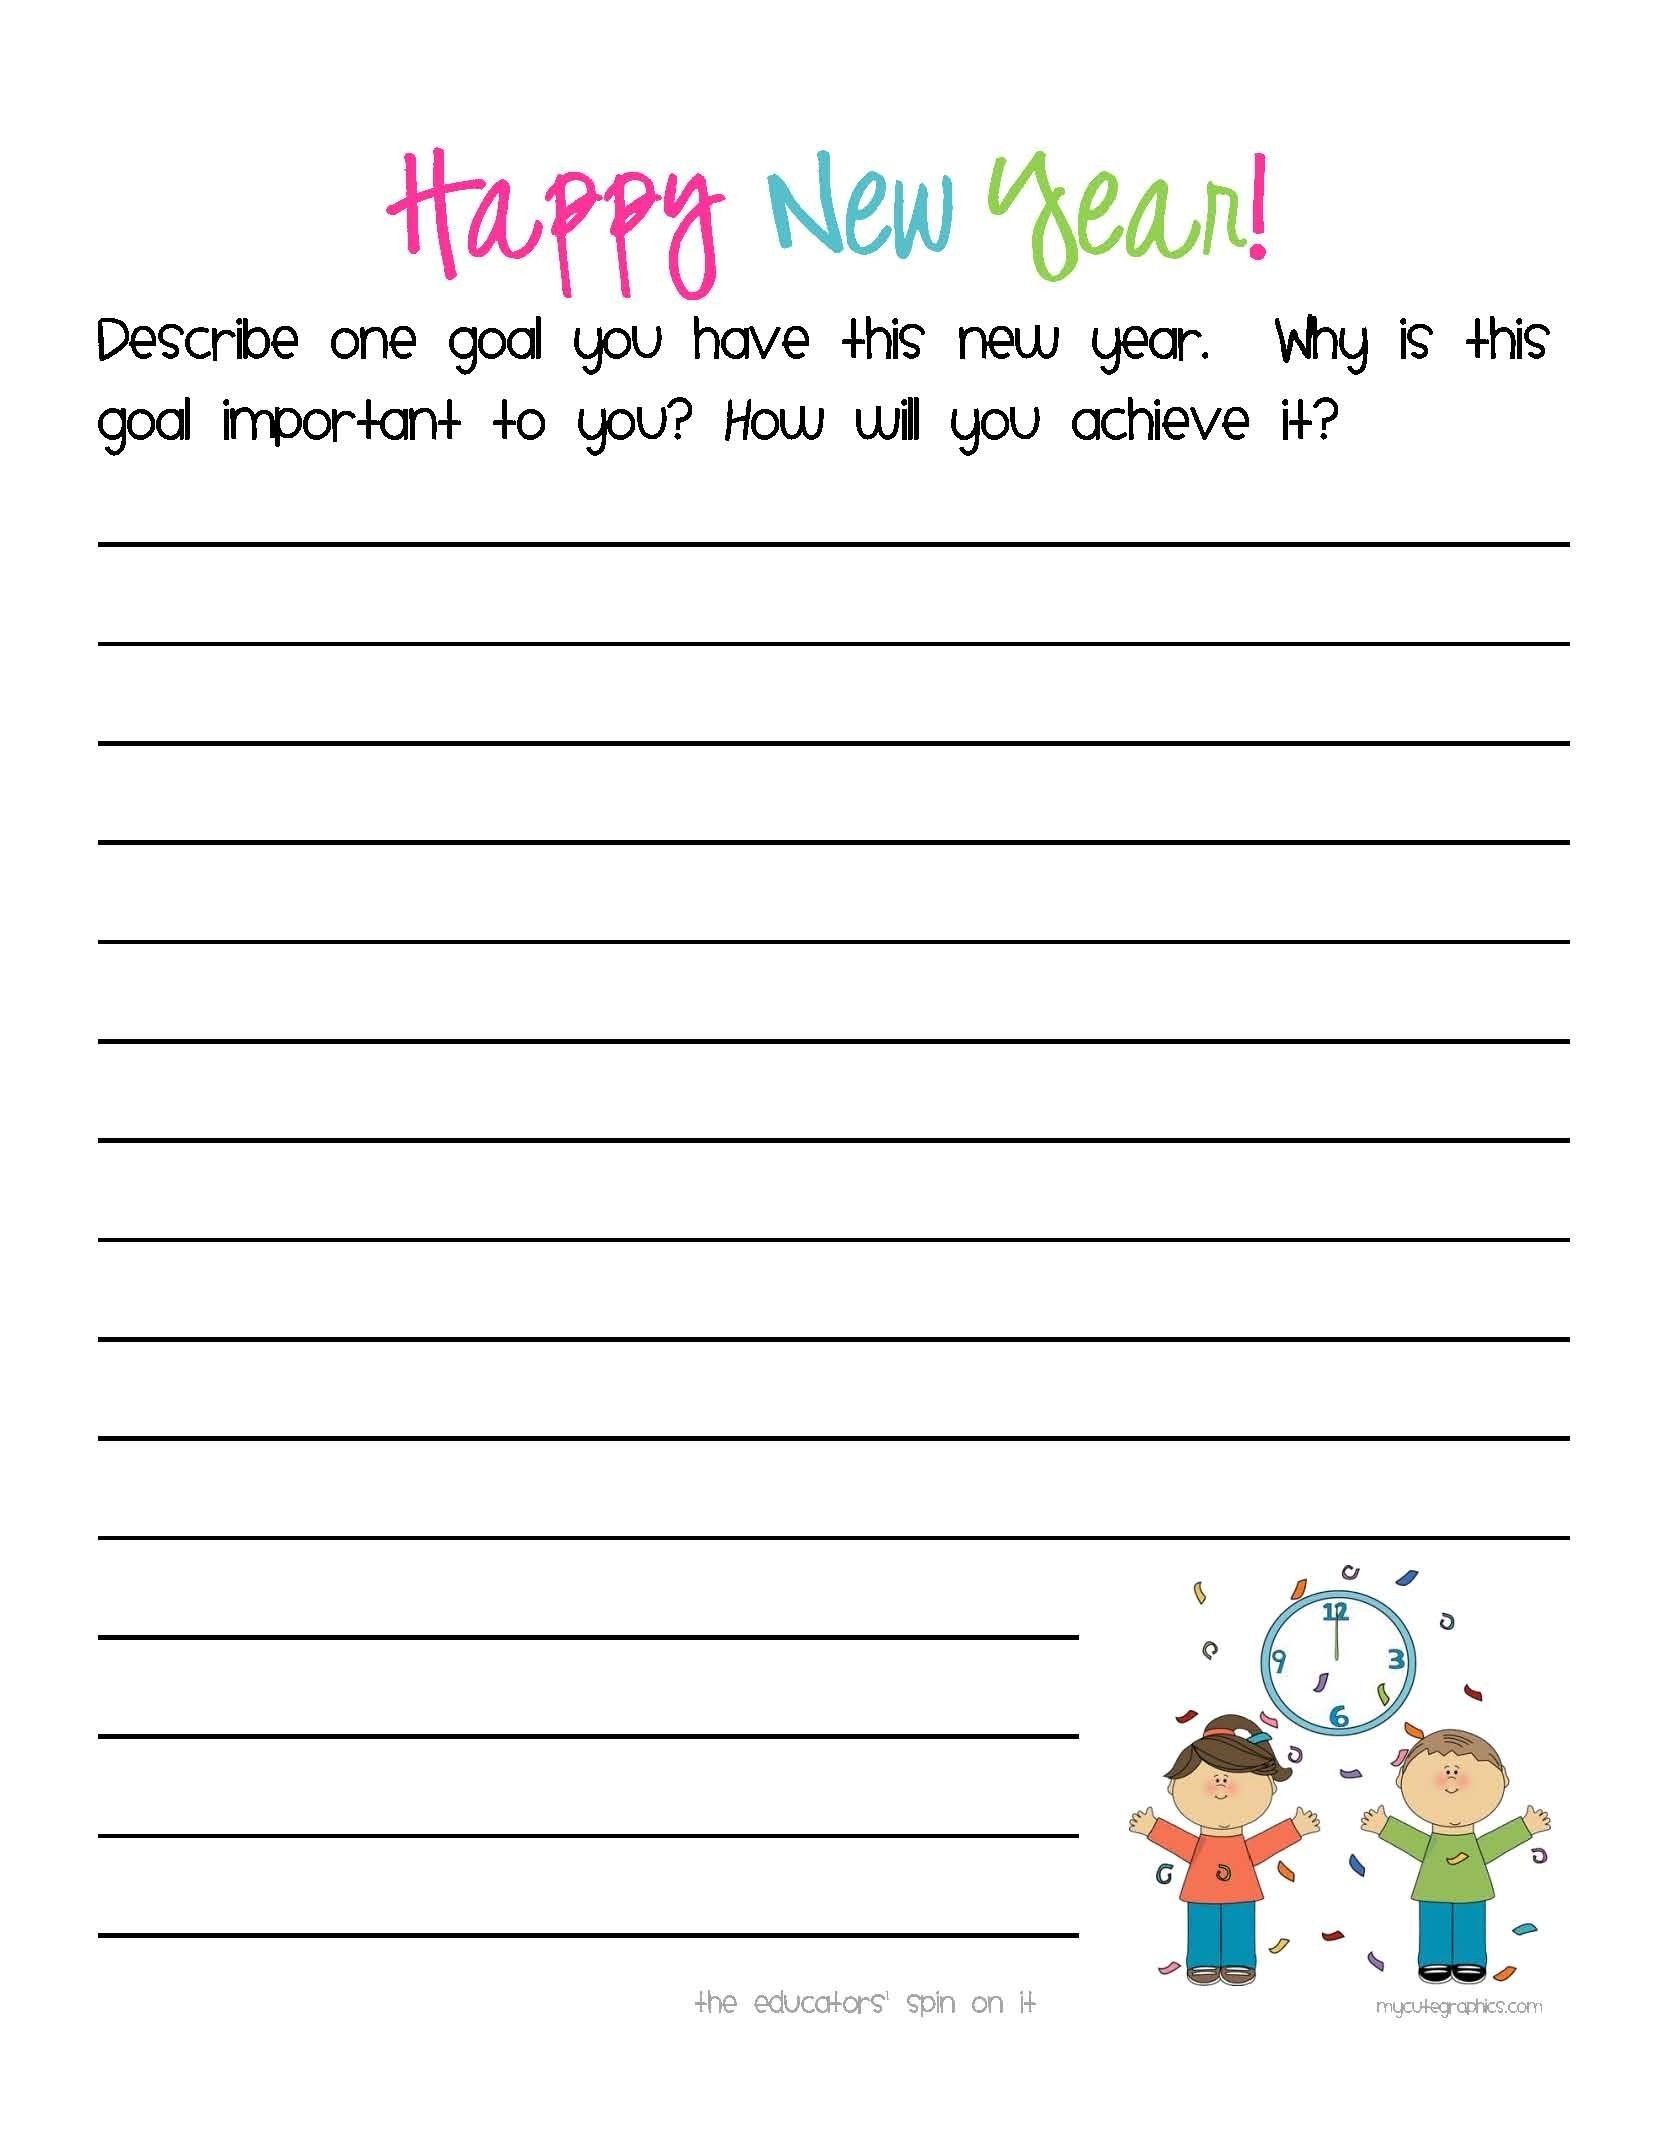 4 Worksheet Seasons Writing Prompt New Year S Activities With Kids Creative Writing Worksheets 1st Grade Writing Worksheets Kids Writing Activities Creative writing worksheets for grade 1